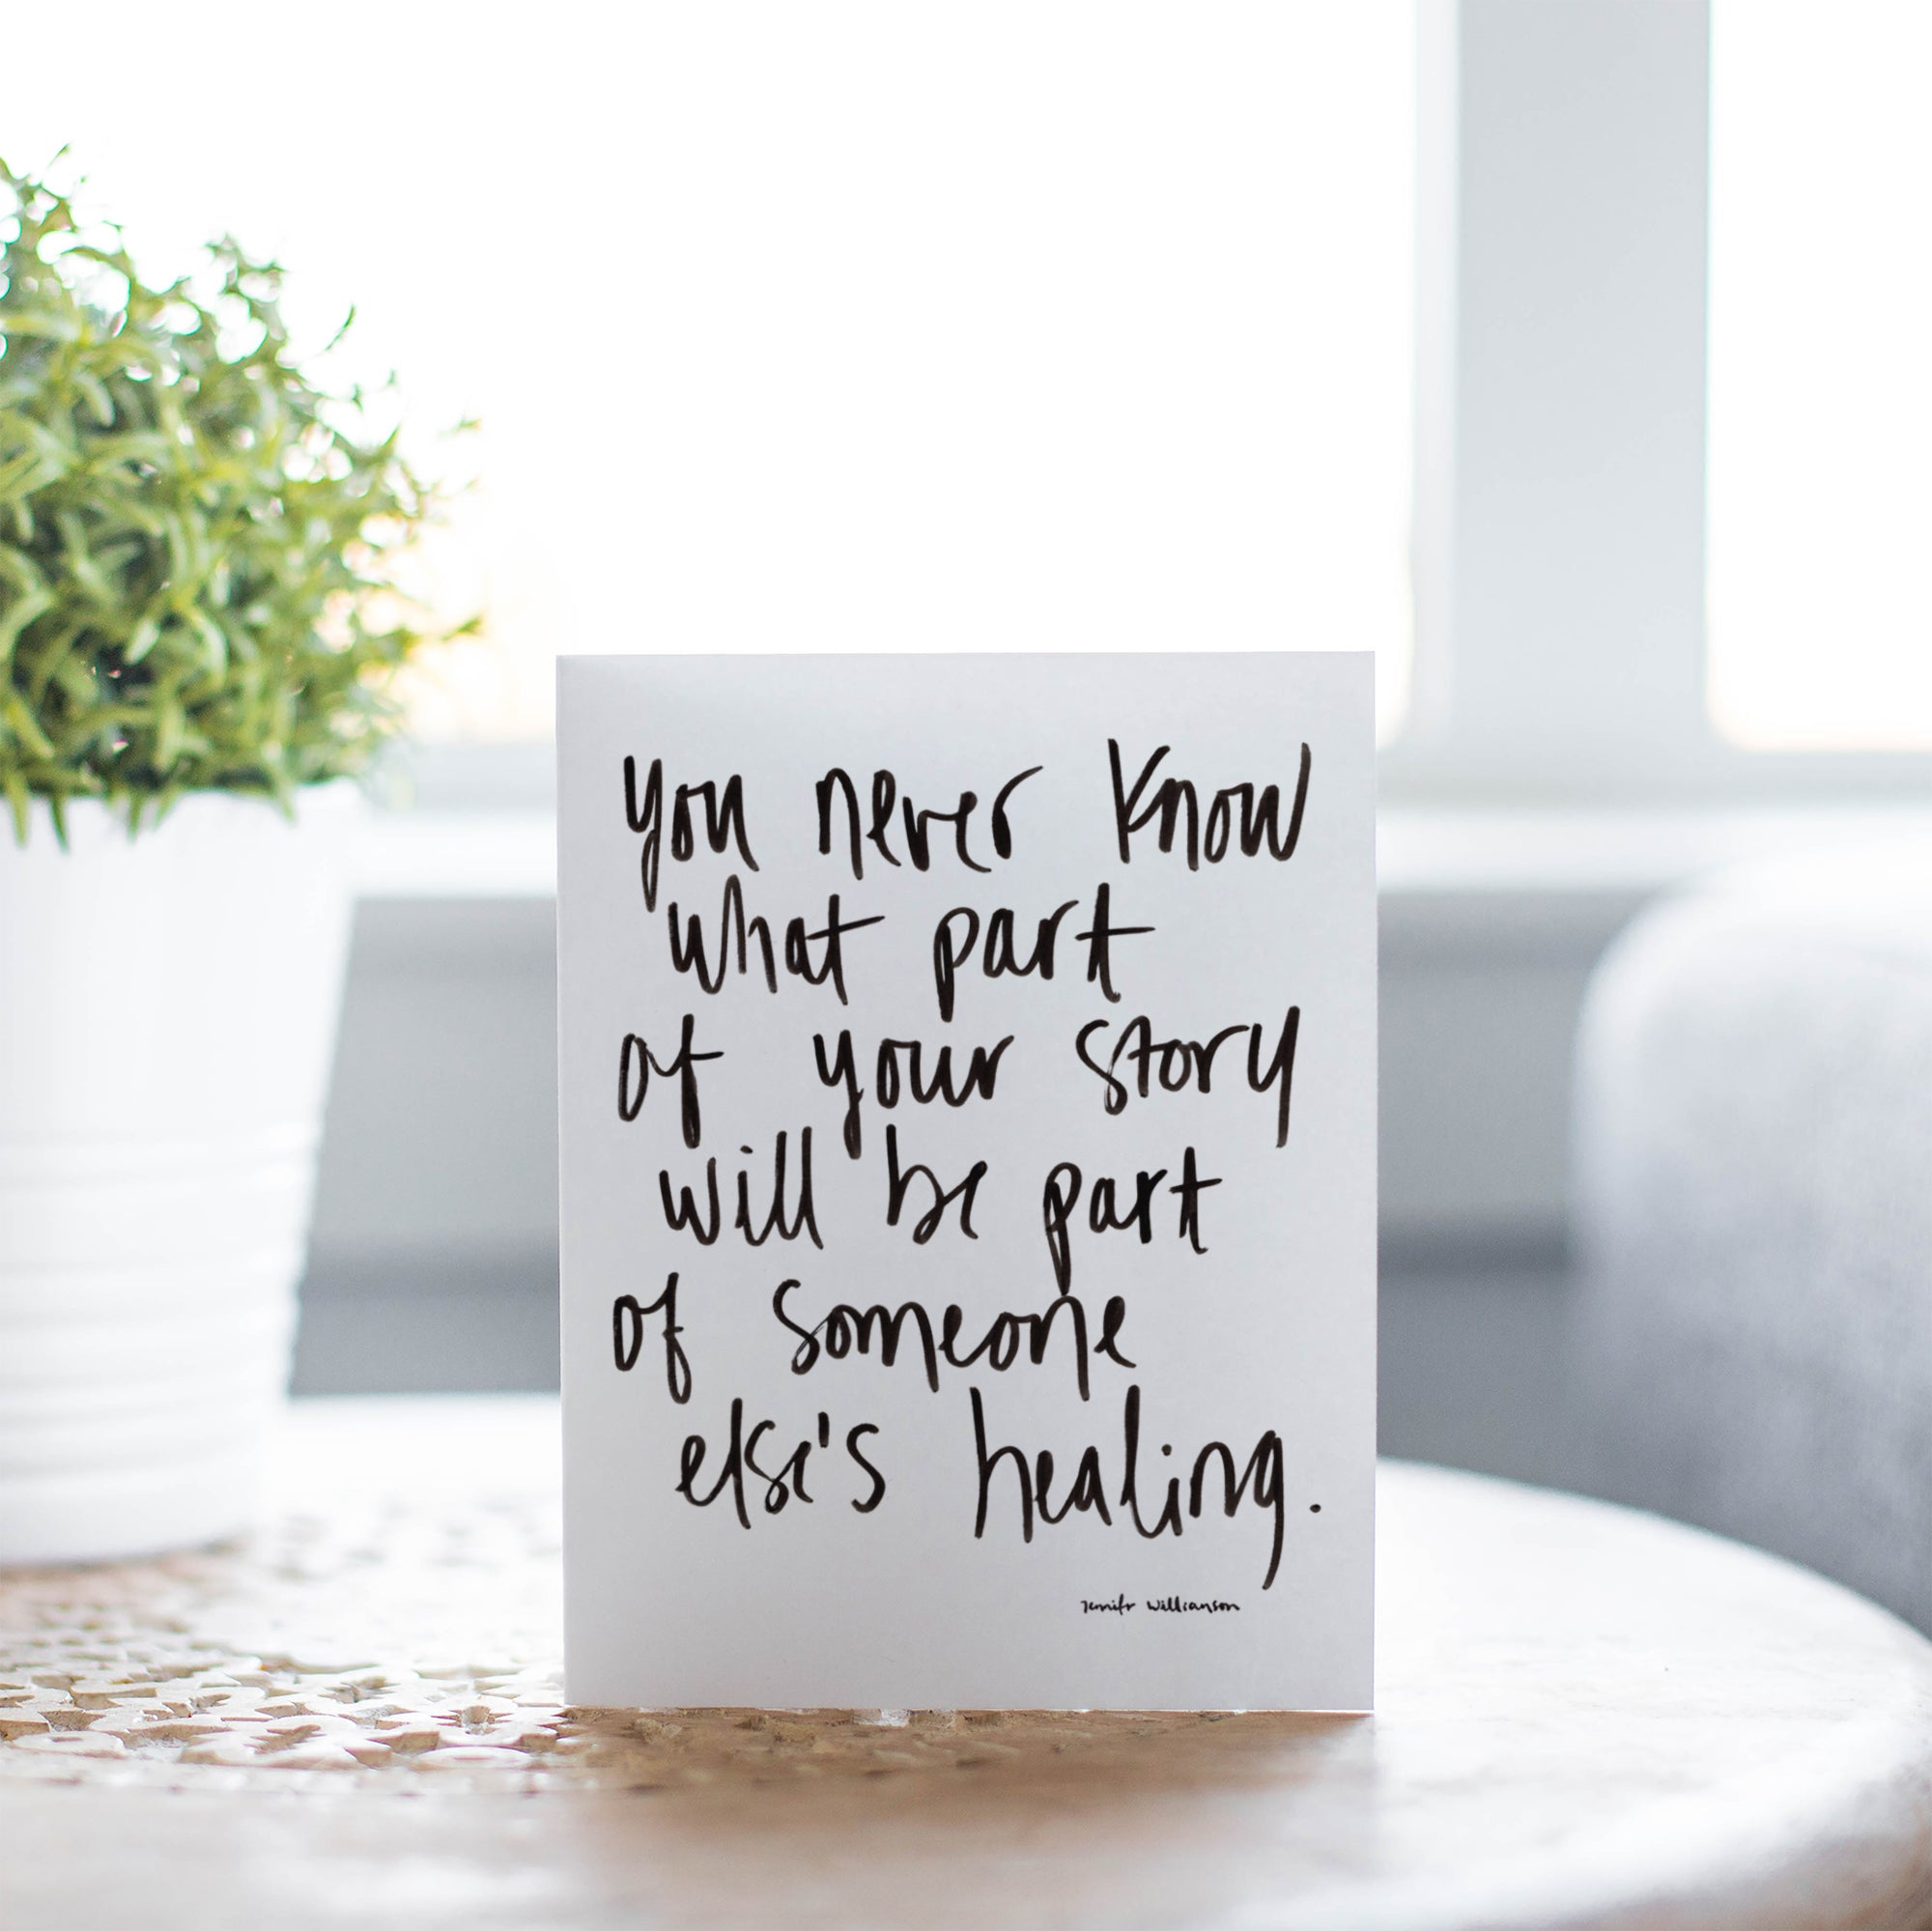 Sharing Is Healing Hand Lettered Poetry Encouragement Card